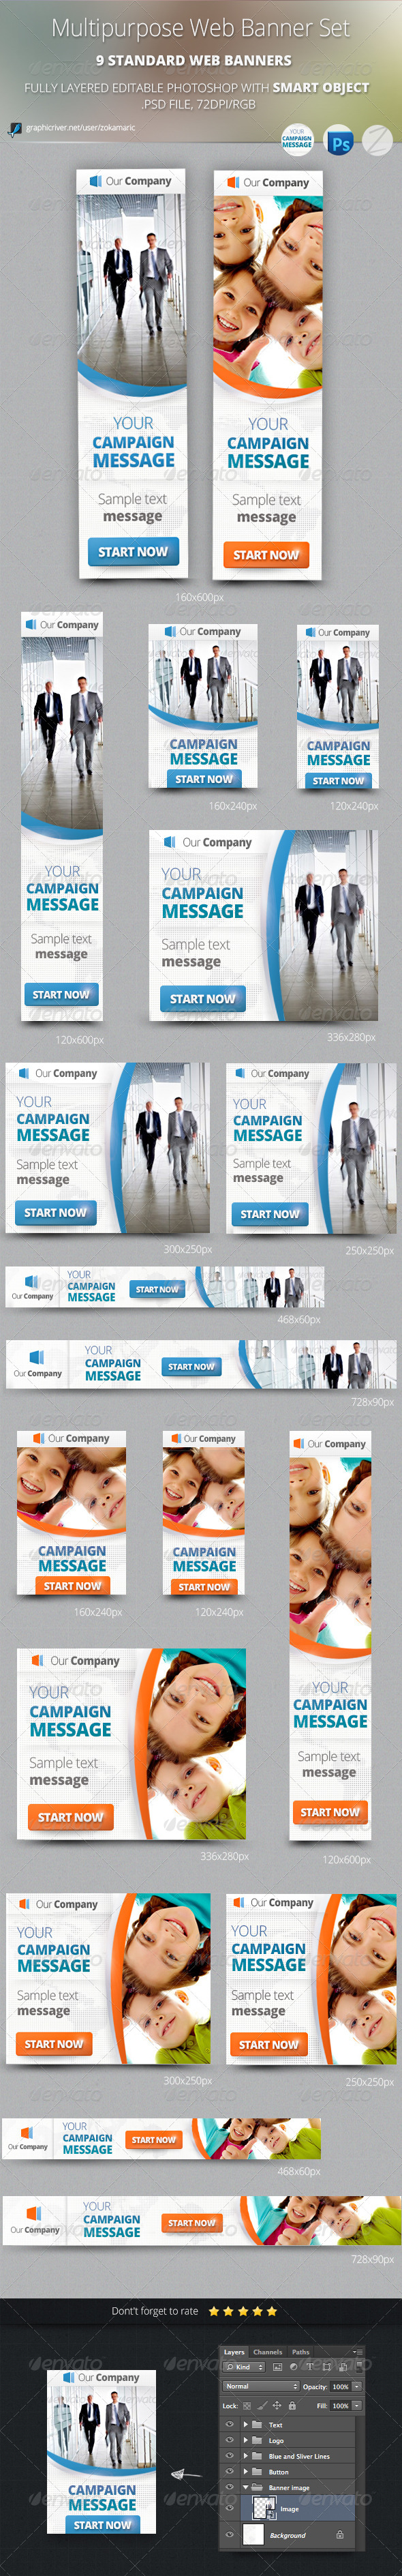 Multipurpose Web Banner Set - Banners & Ads Web Elements